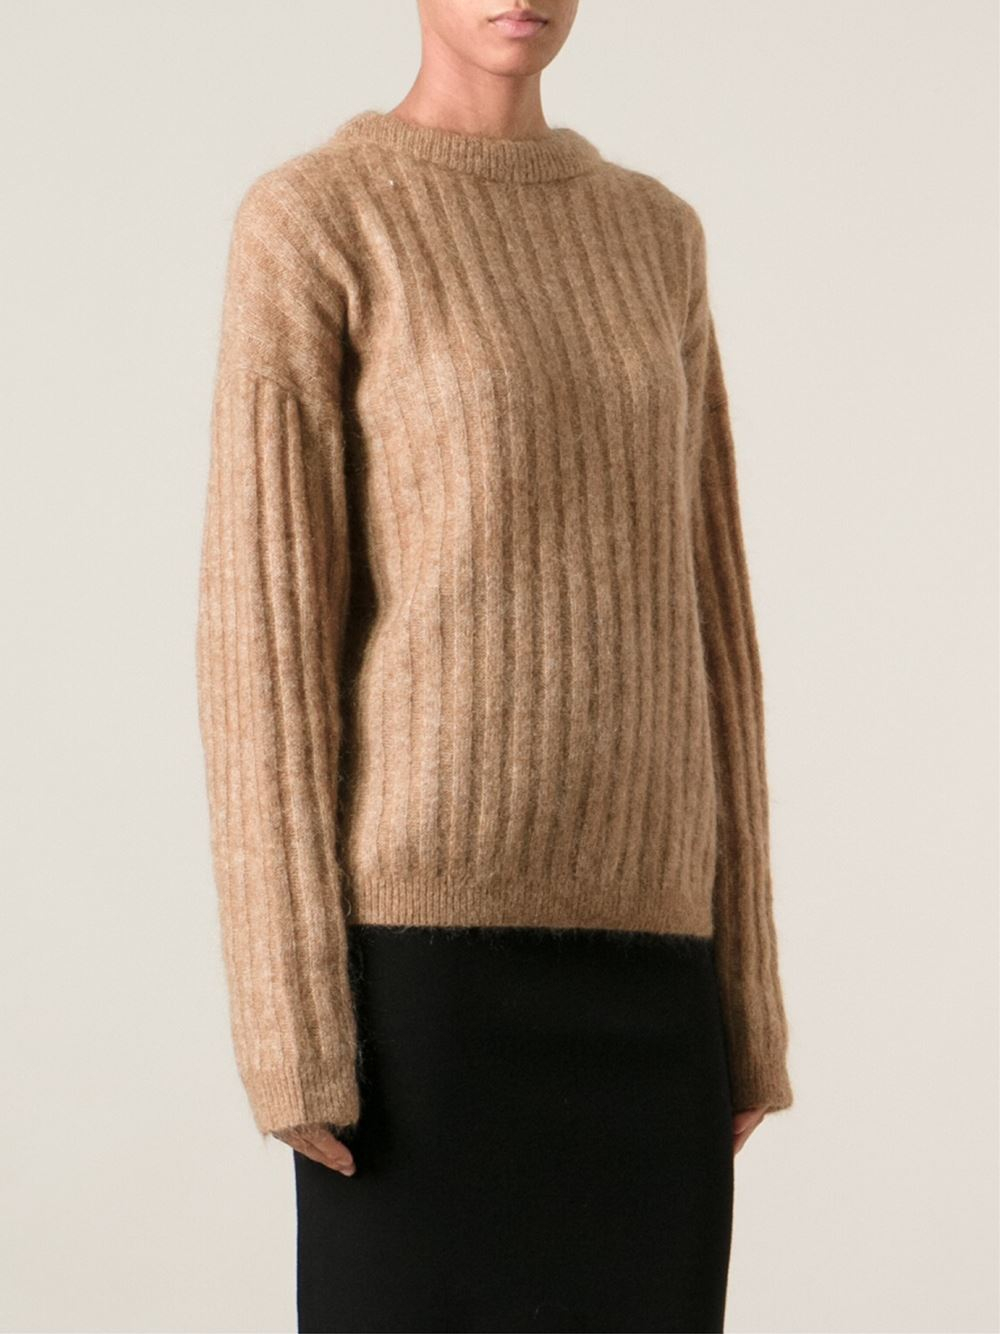 Acne studios Ribbed Knit Sweater in Natural | Lyst